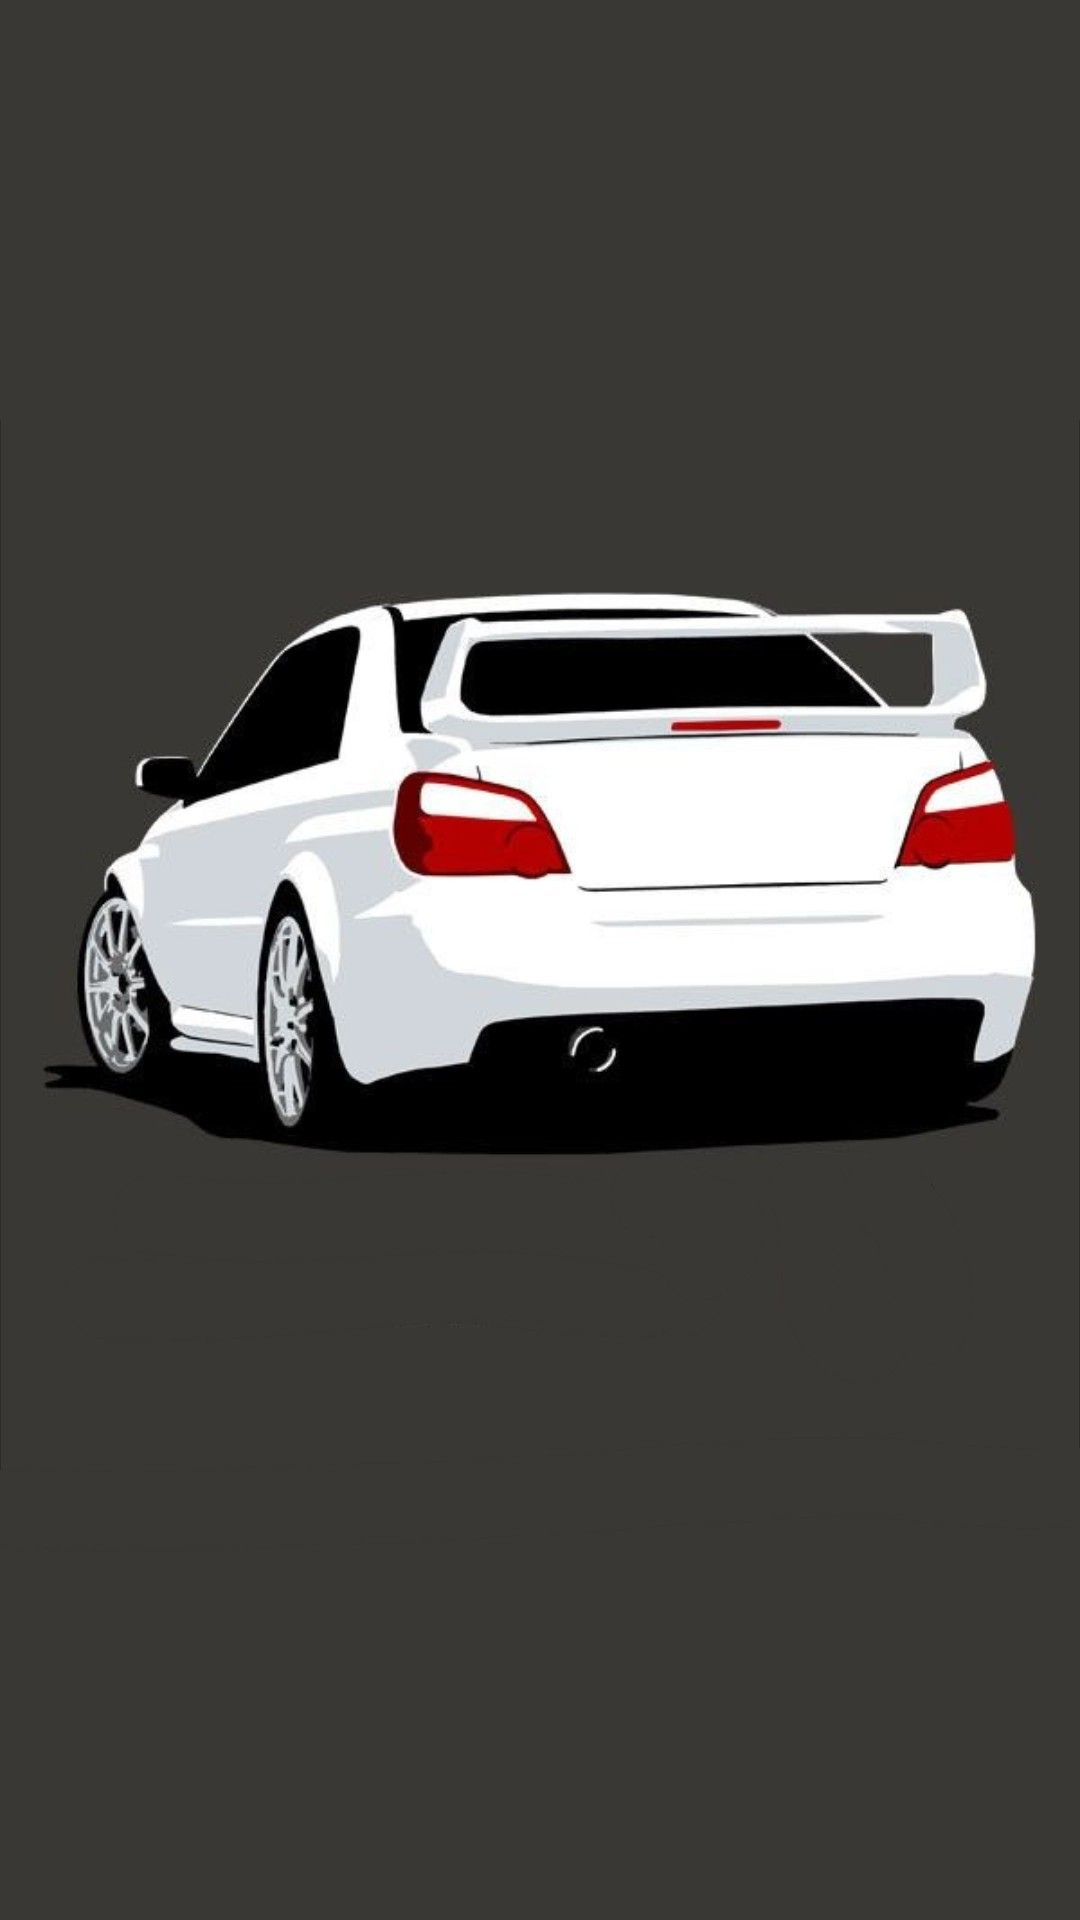 Wallpaper Minimalista Car Iphone Wallpaper Jdm Wallpaper